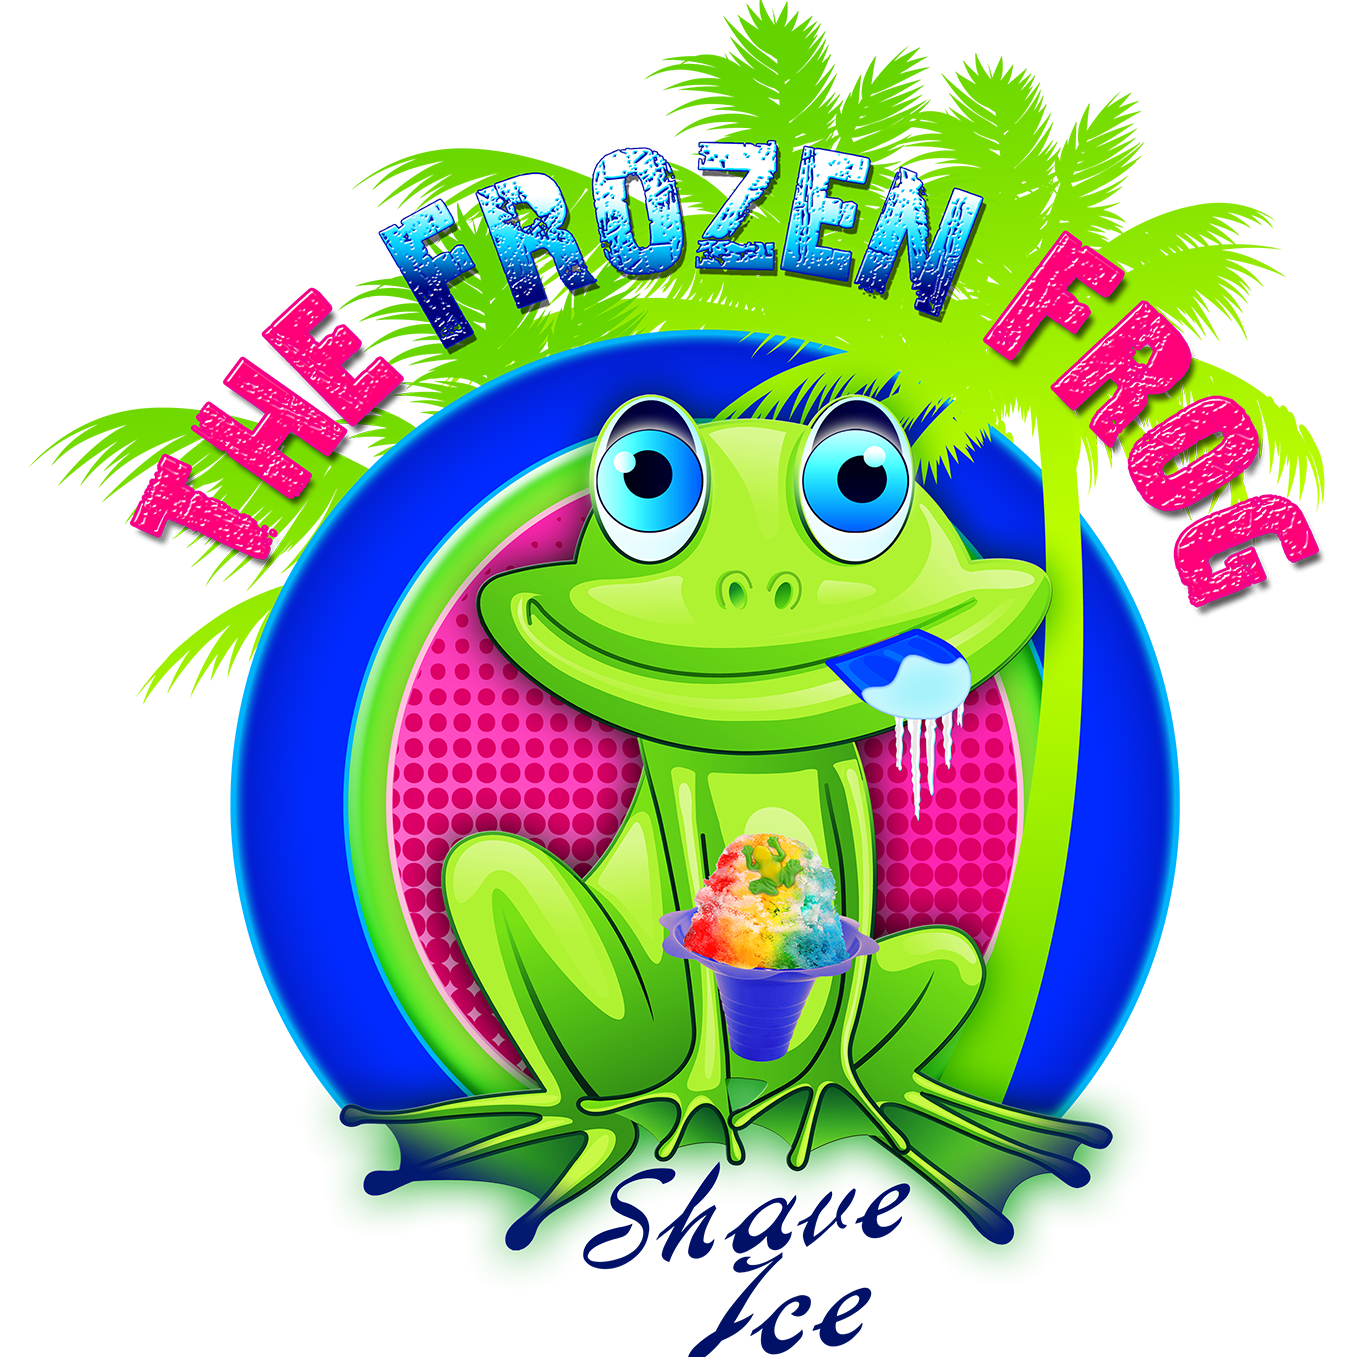 The Frozen Frog/Poppin' Frog